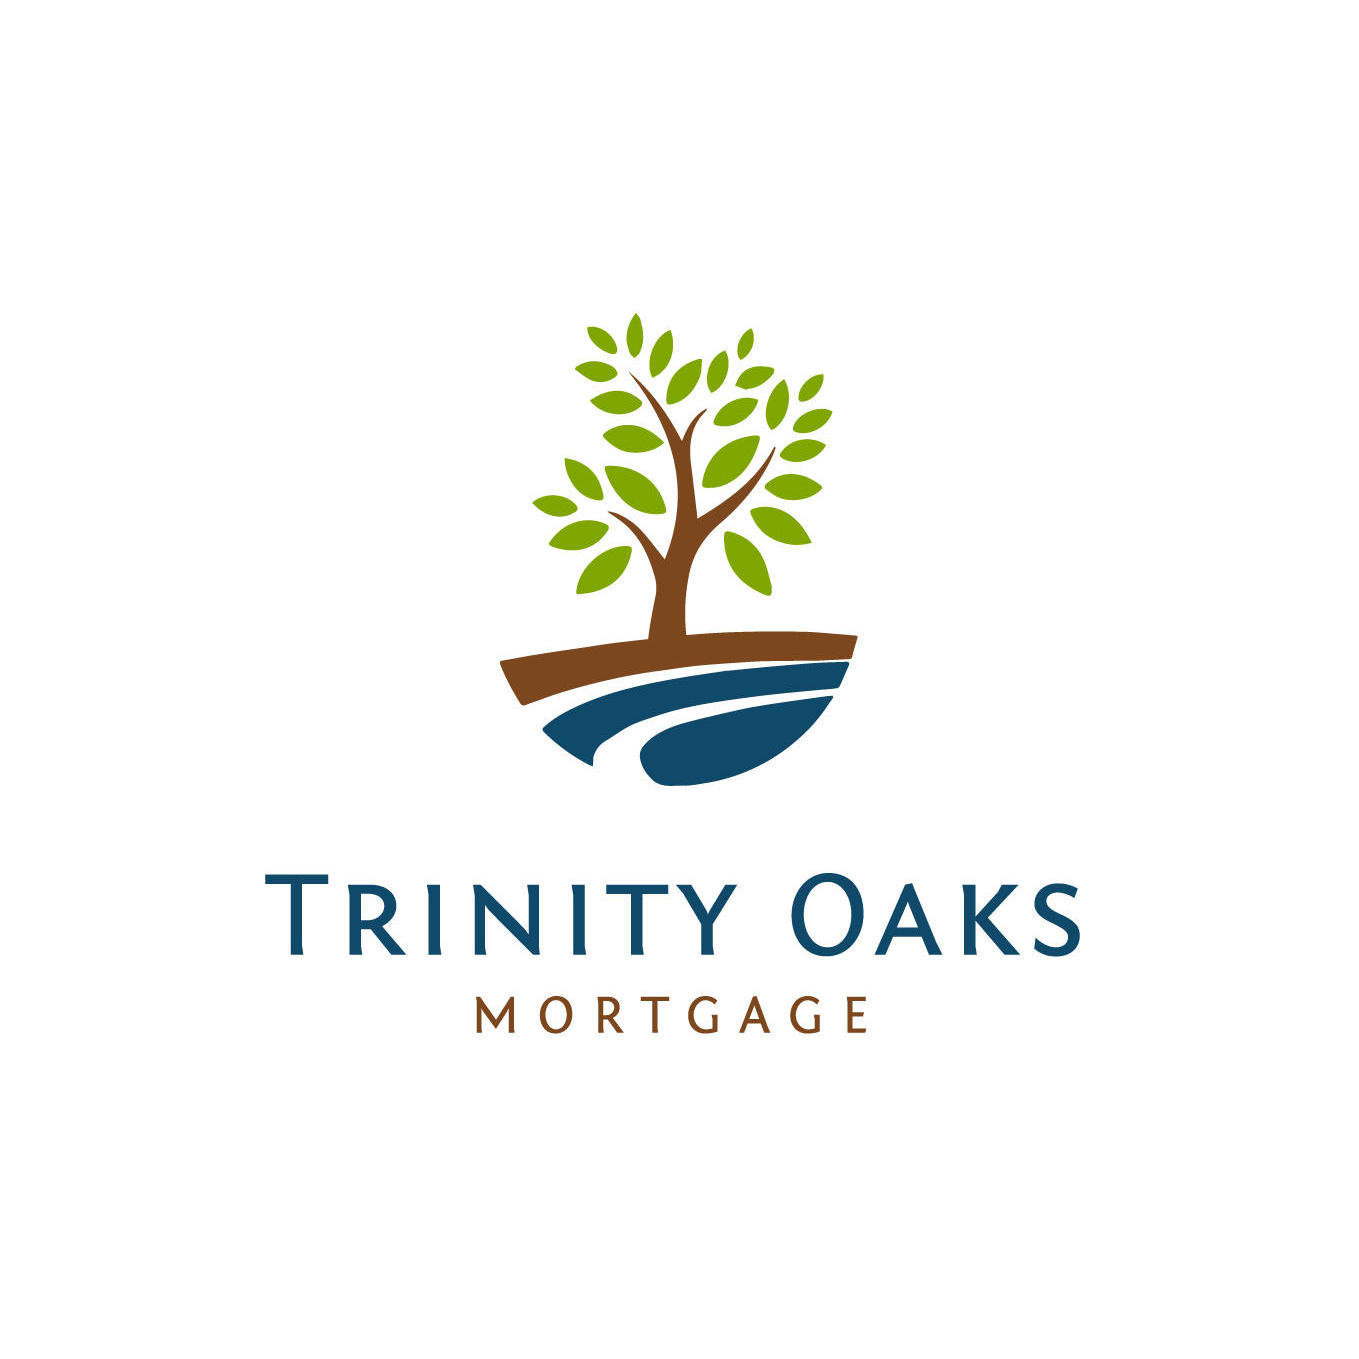 Mortgage Lender in TX Red Oak 75154 Trinity Oaks Mortgage 204A North I-35E  (469)552-5600